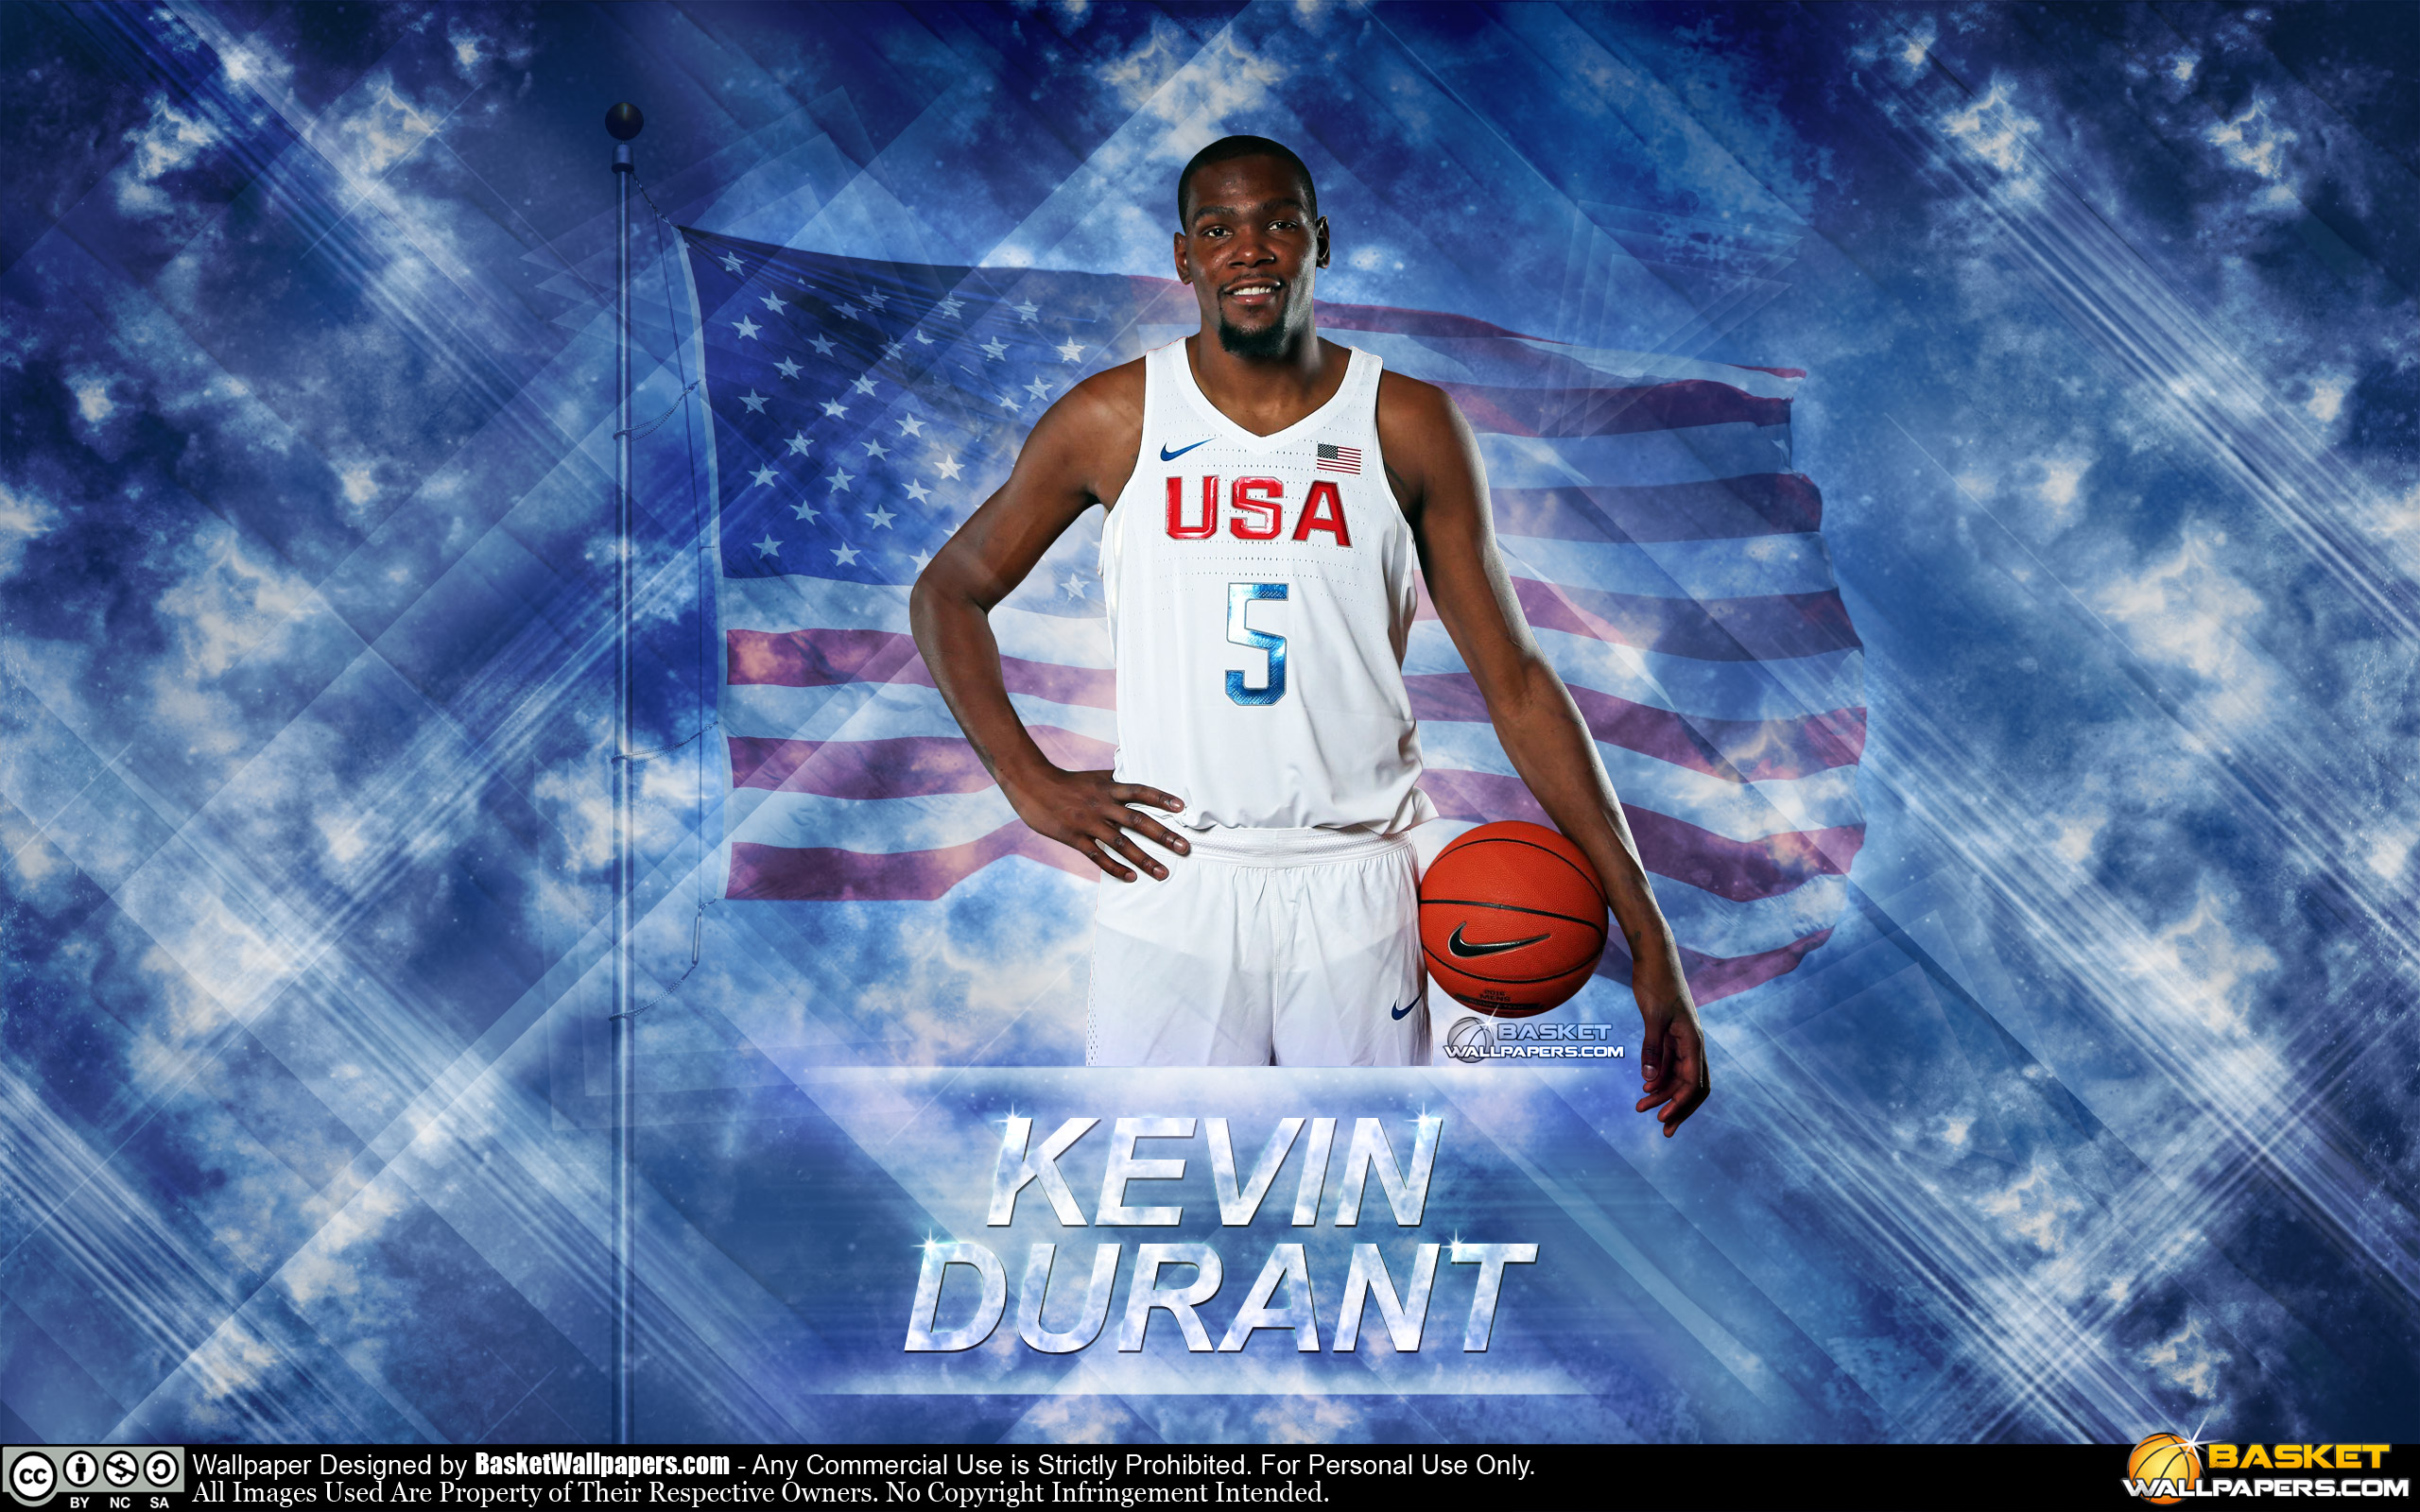 Kevin Durant USA 2016 Olympics Wallpaper Basketball 2560x1600